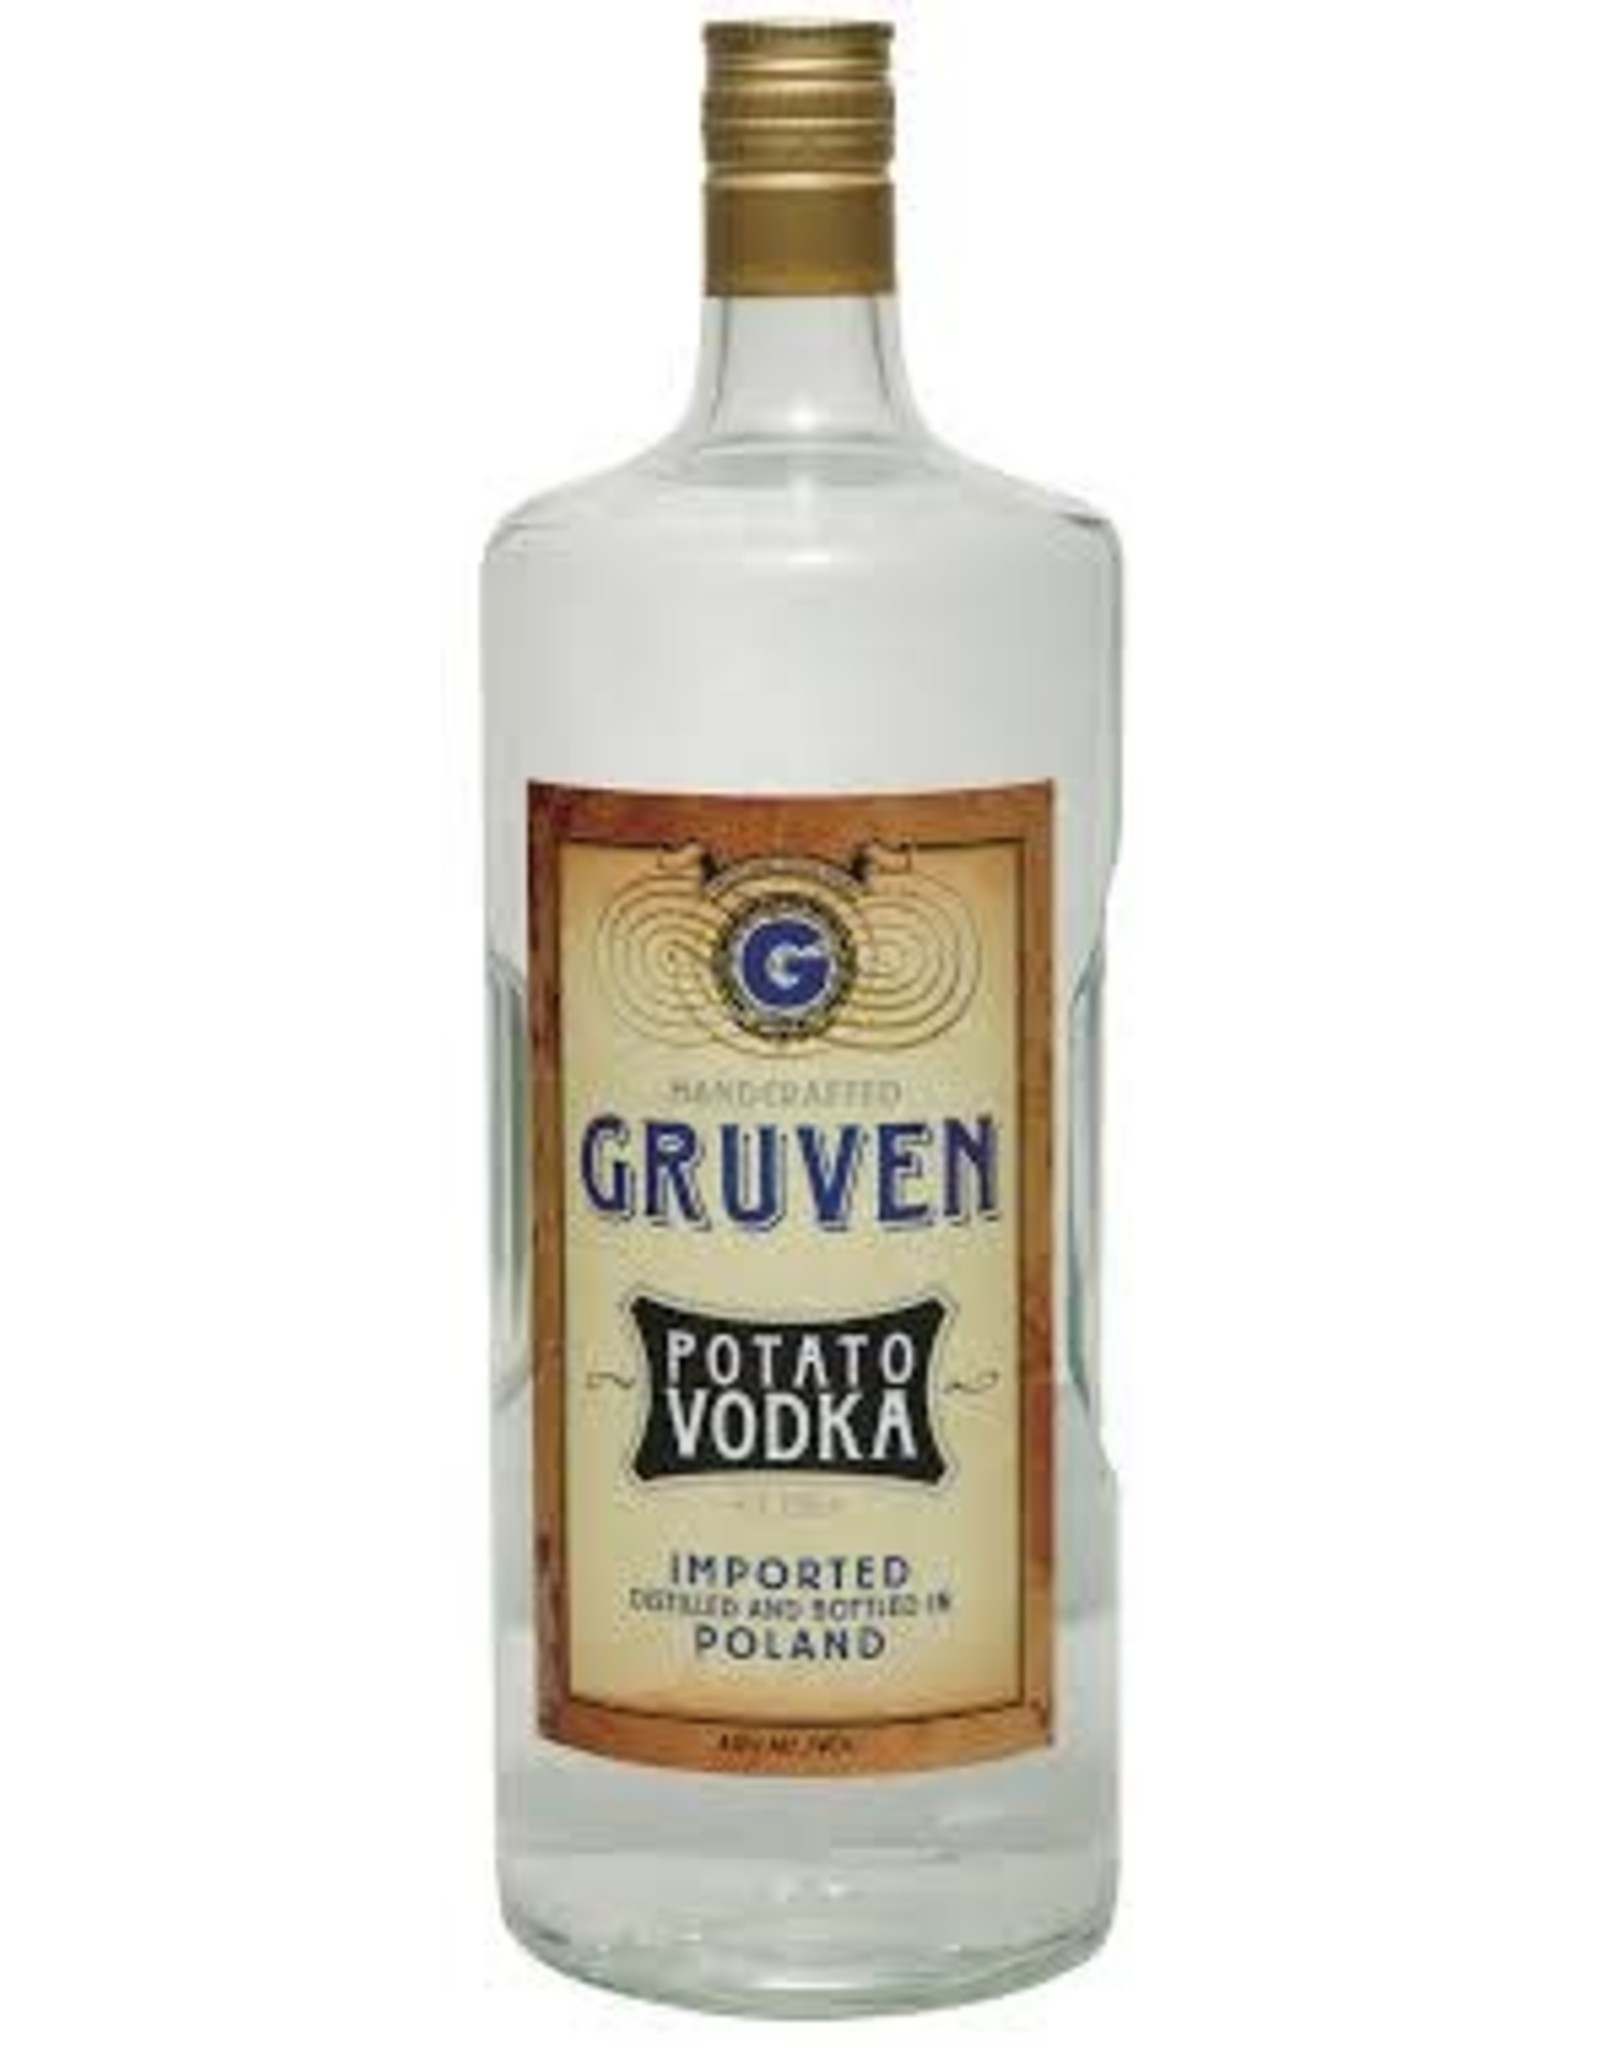 GRUVEN POLISH POTATO VODKA 1.75